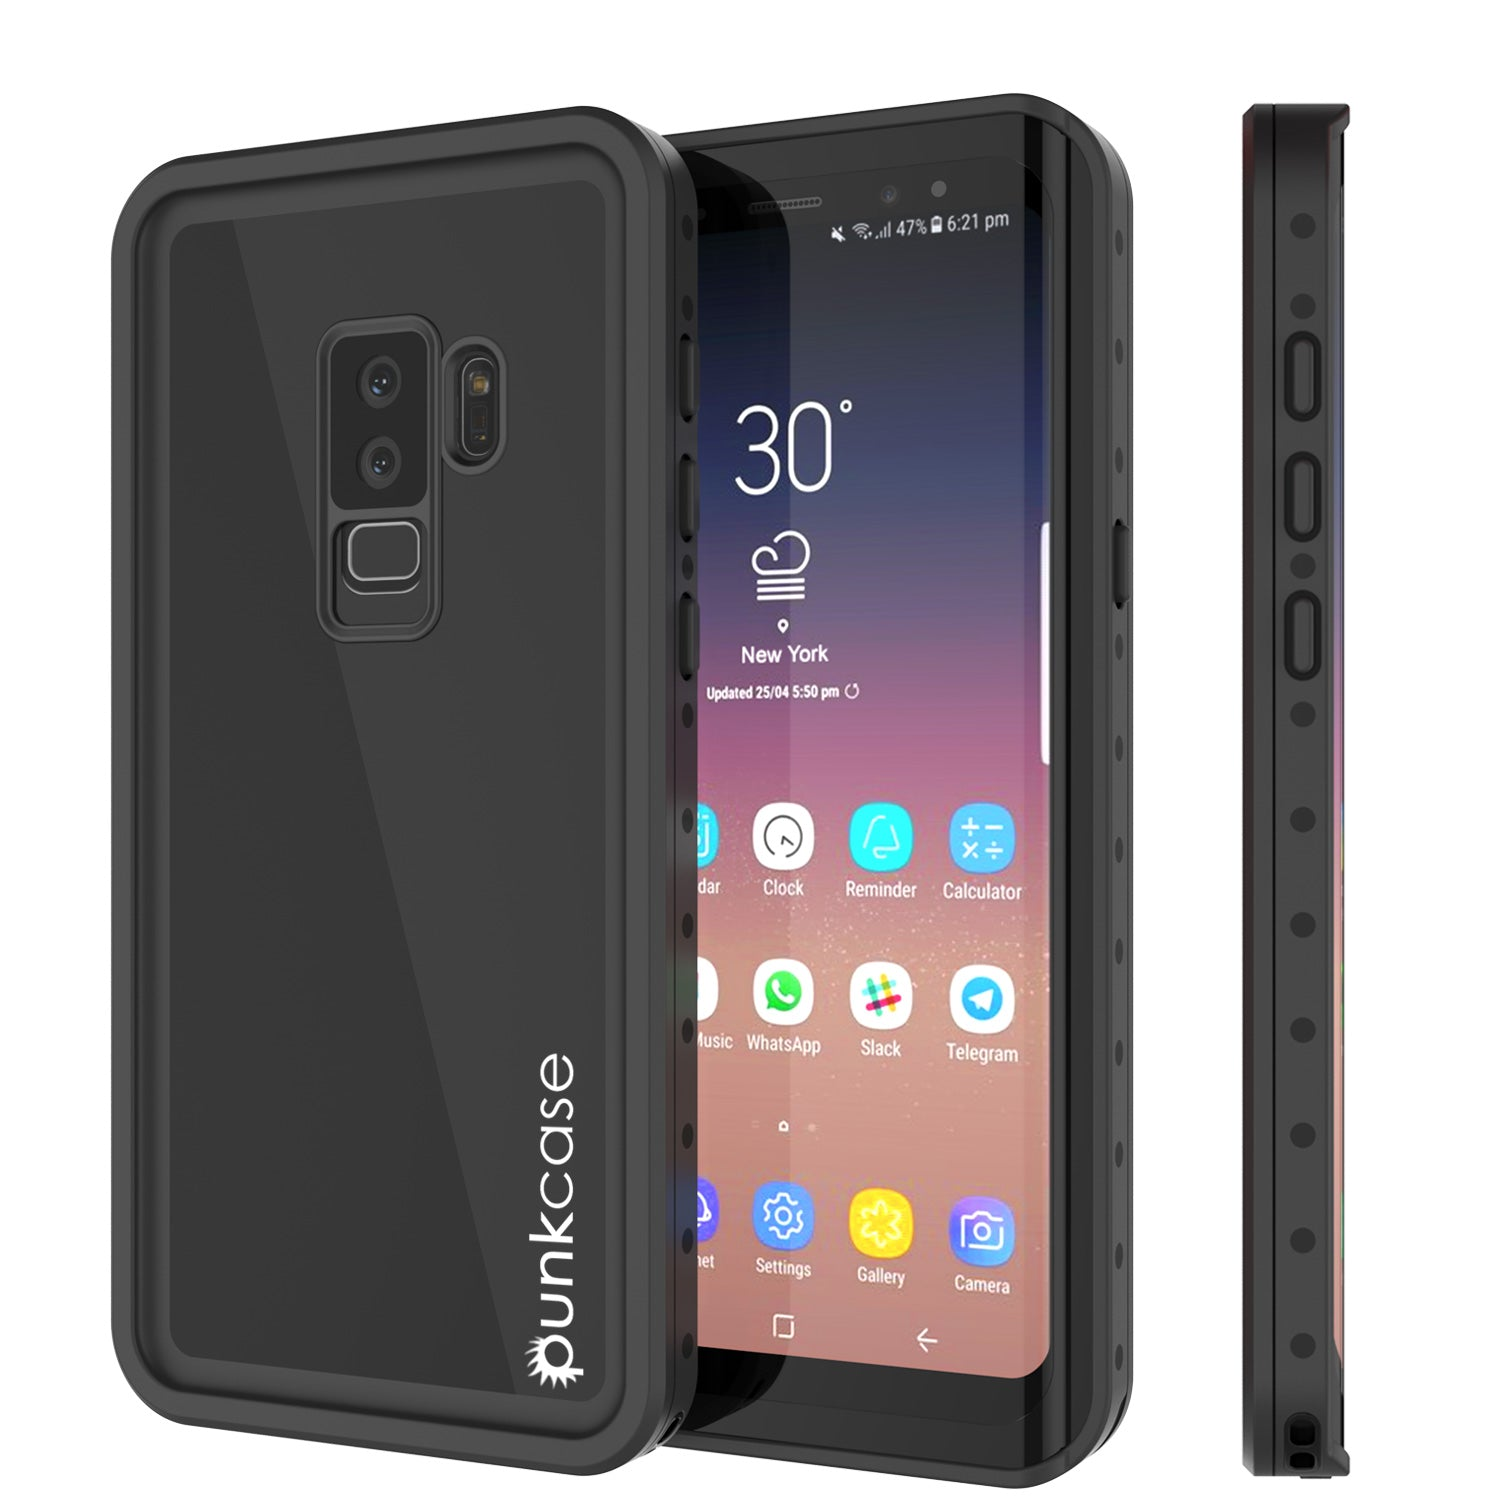 huge selection of 85a00 c8f38 Galaxy S9 Plus Waterproof Case PunkCase StudStar Black Thin 6.6ft  Underwater IP68 Shock/Snow Proof